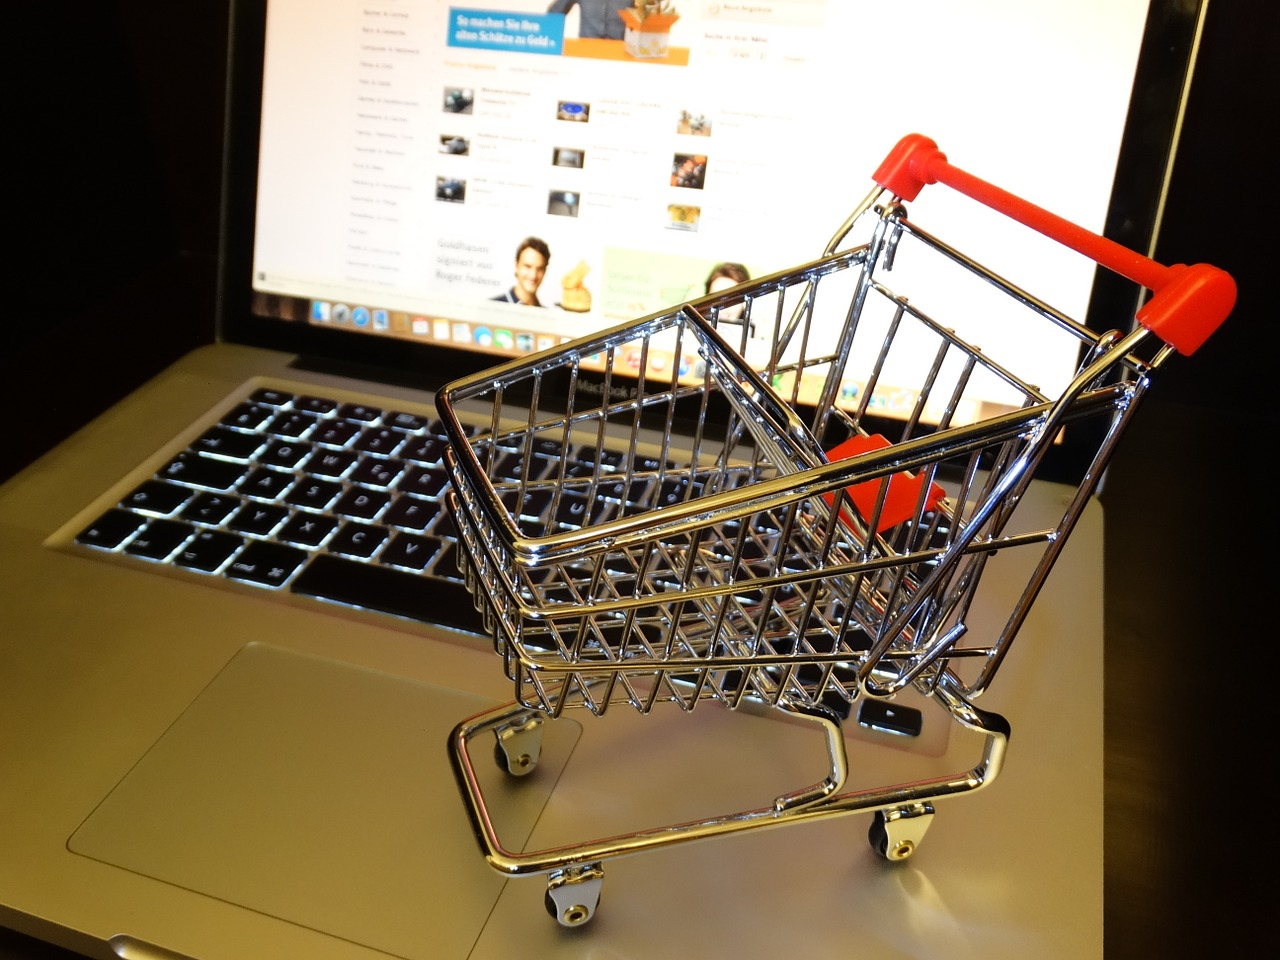 Shopping online is the way of the commercial world these days ... photo by CC user HebiFot on pixabay